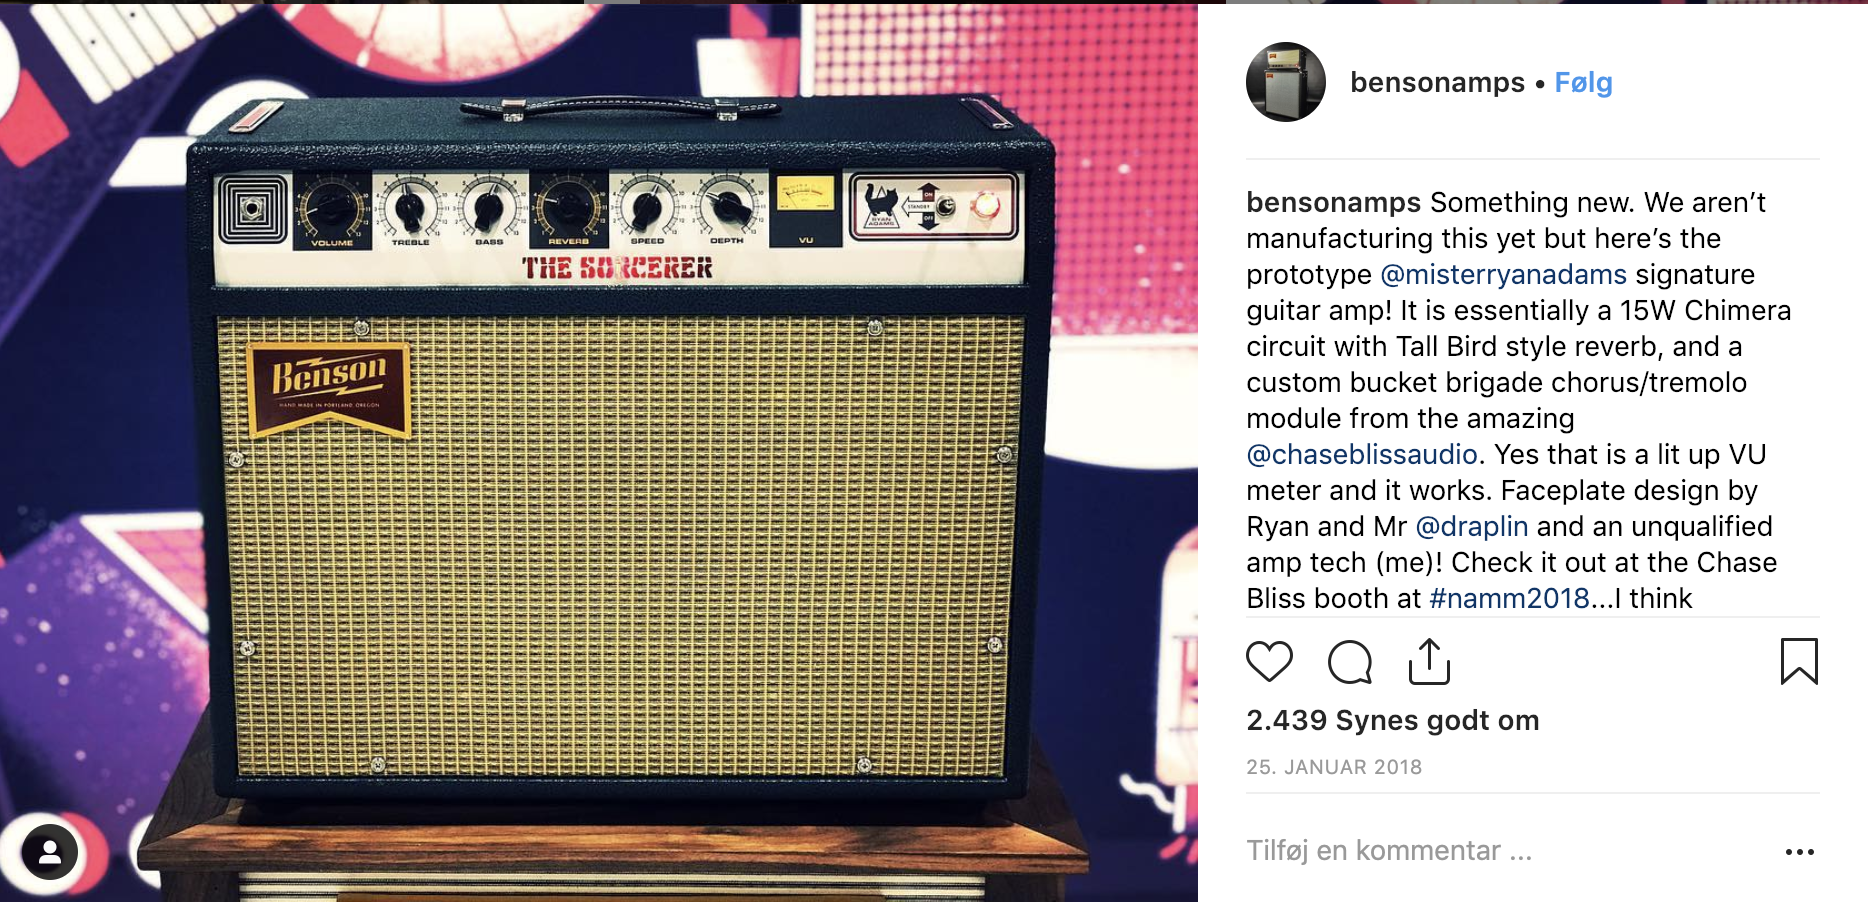 Ryan Adams signature guitar amp from Benson Amps